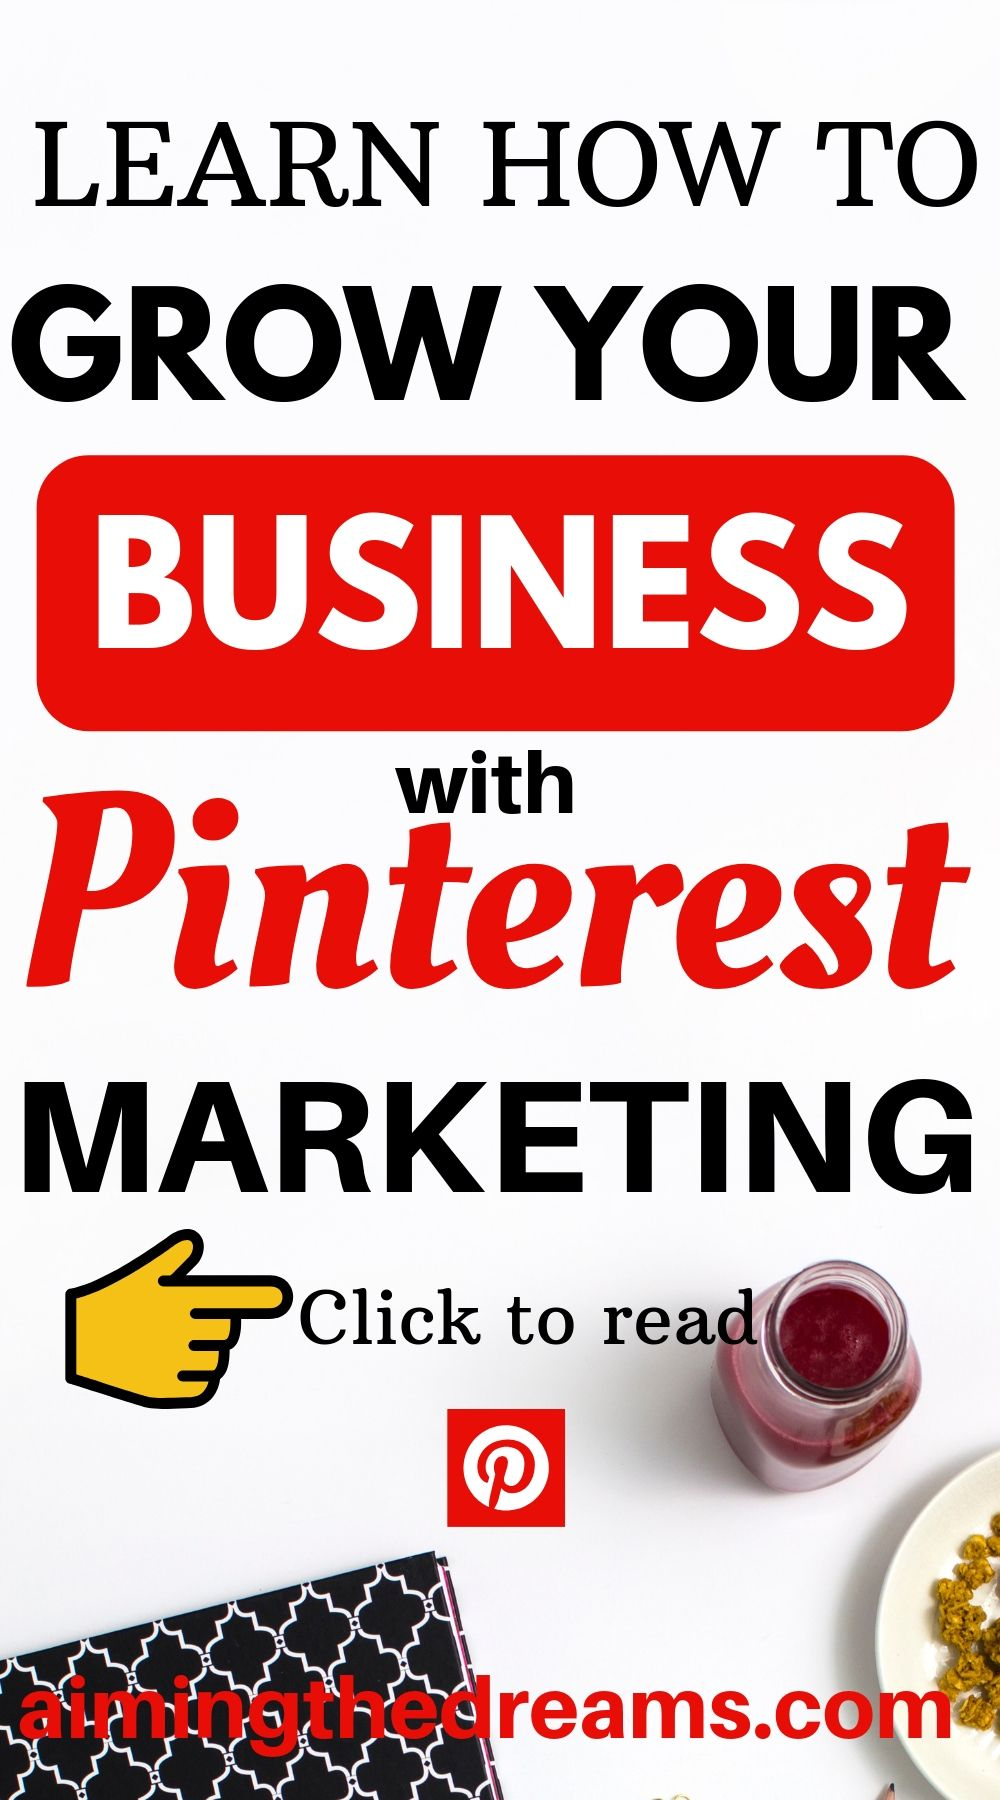 How to grow online business with Pinterest marketing